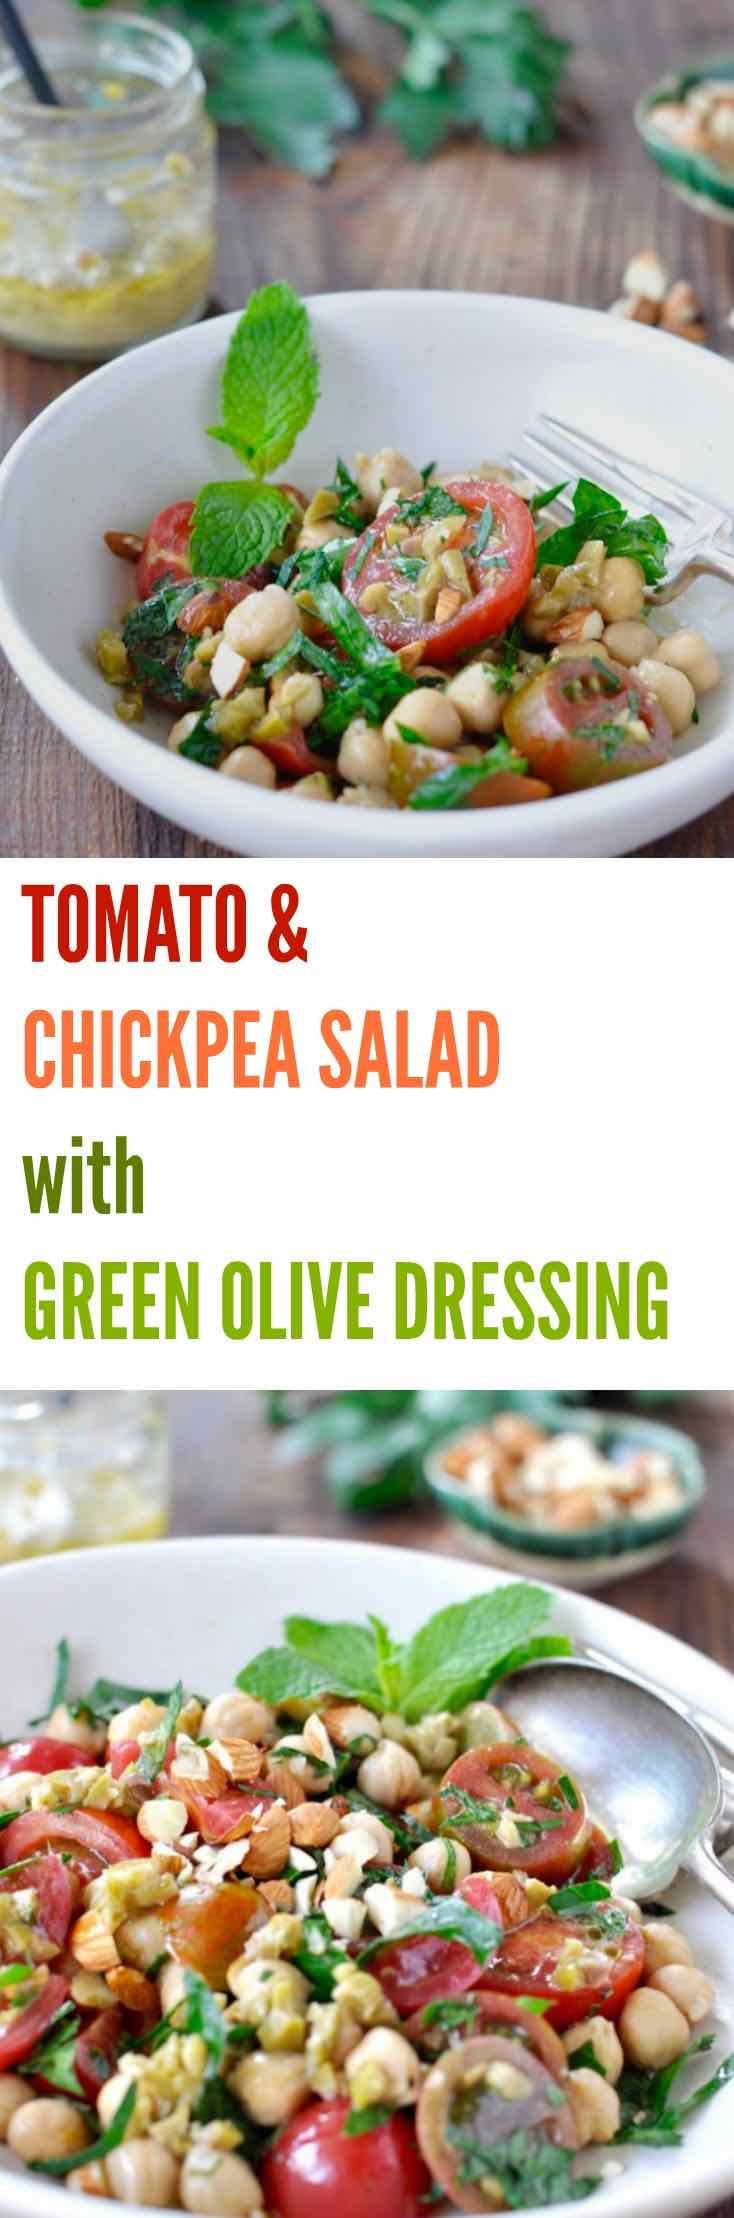 This simple TOMATO & CHICKPEA SALAD WITH GREEN OLIVE DRESSING is ...